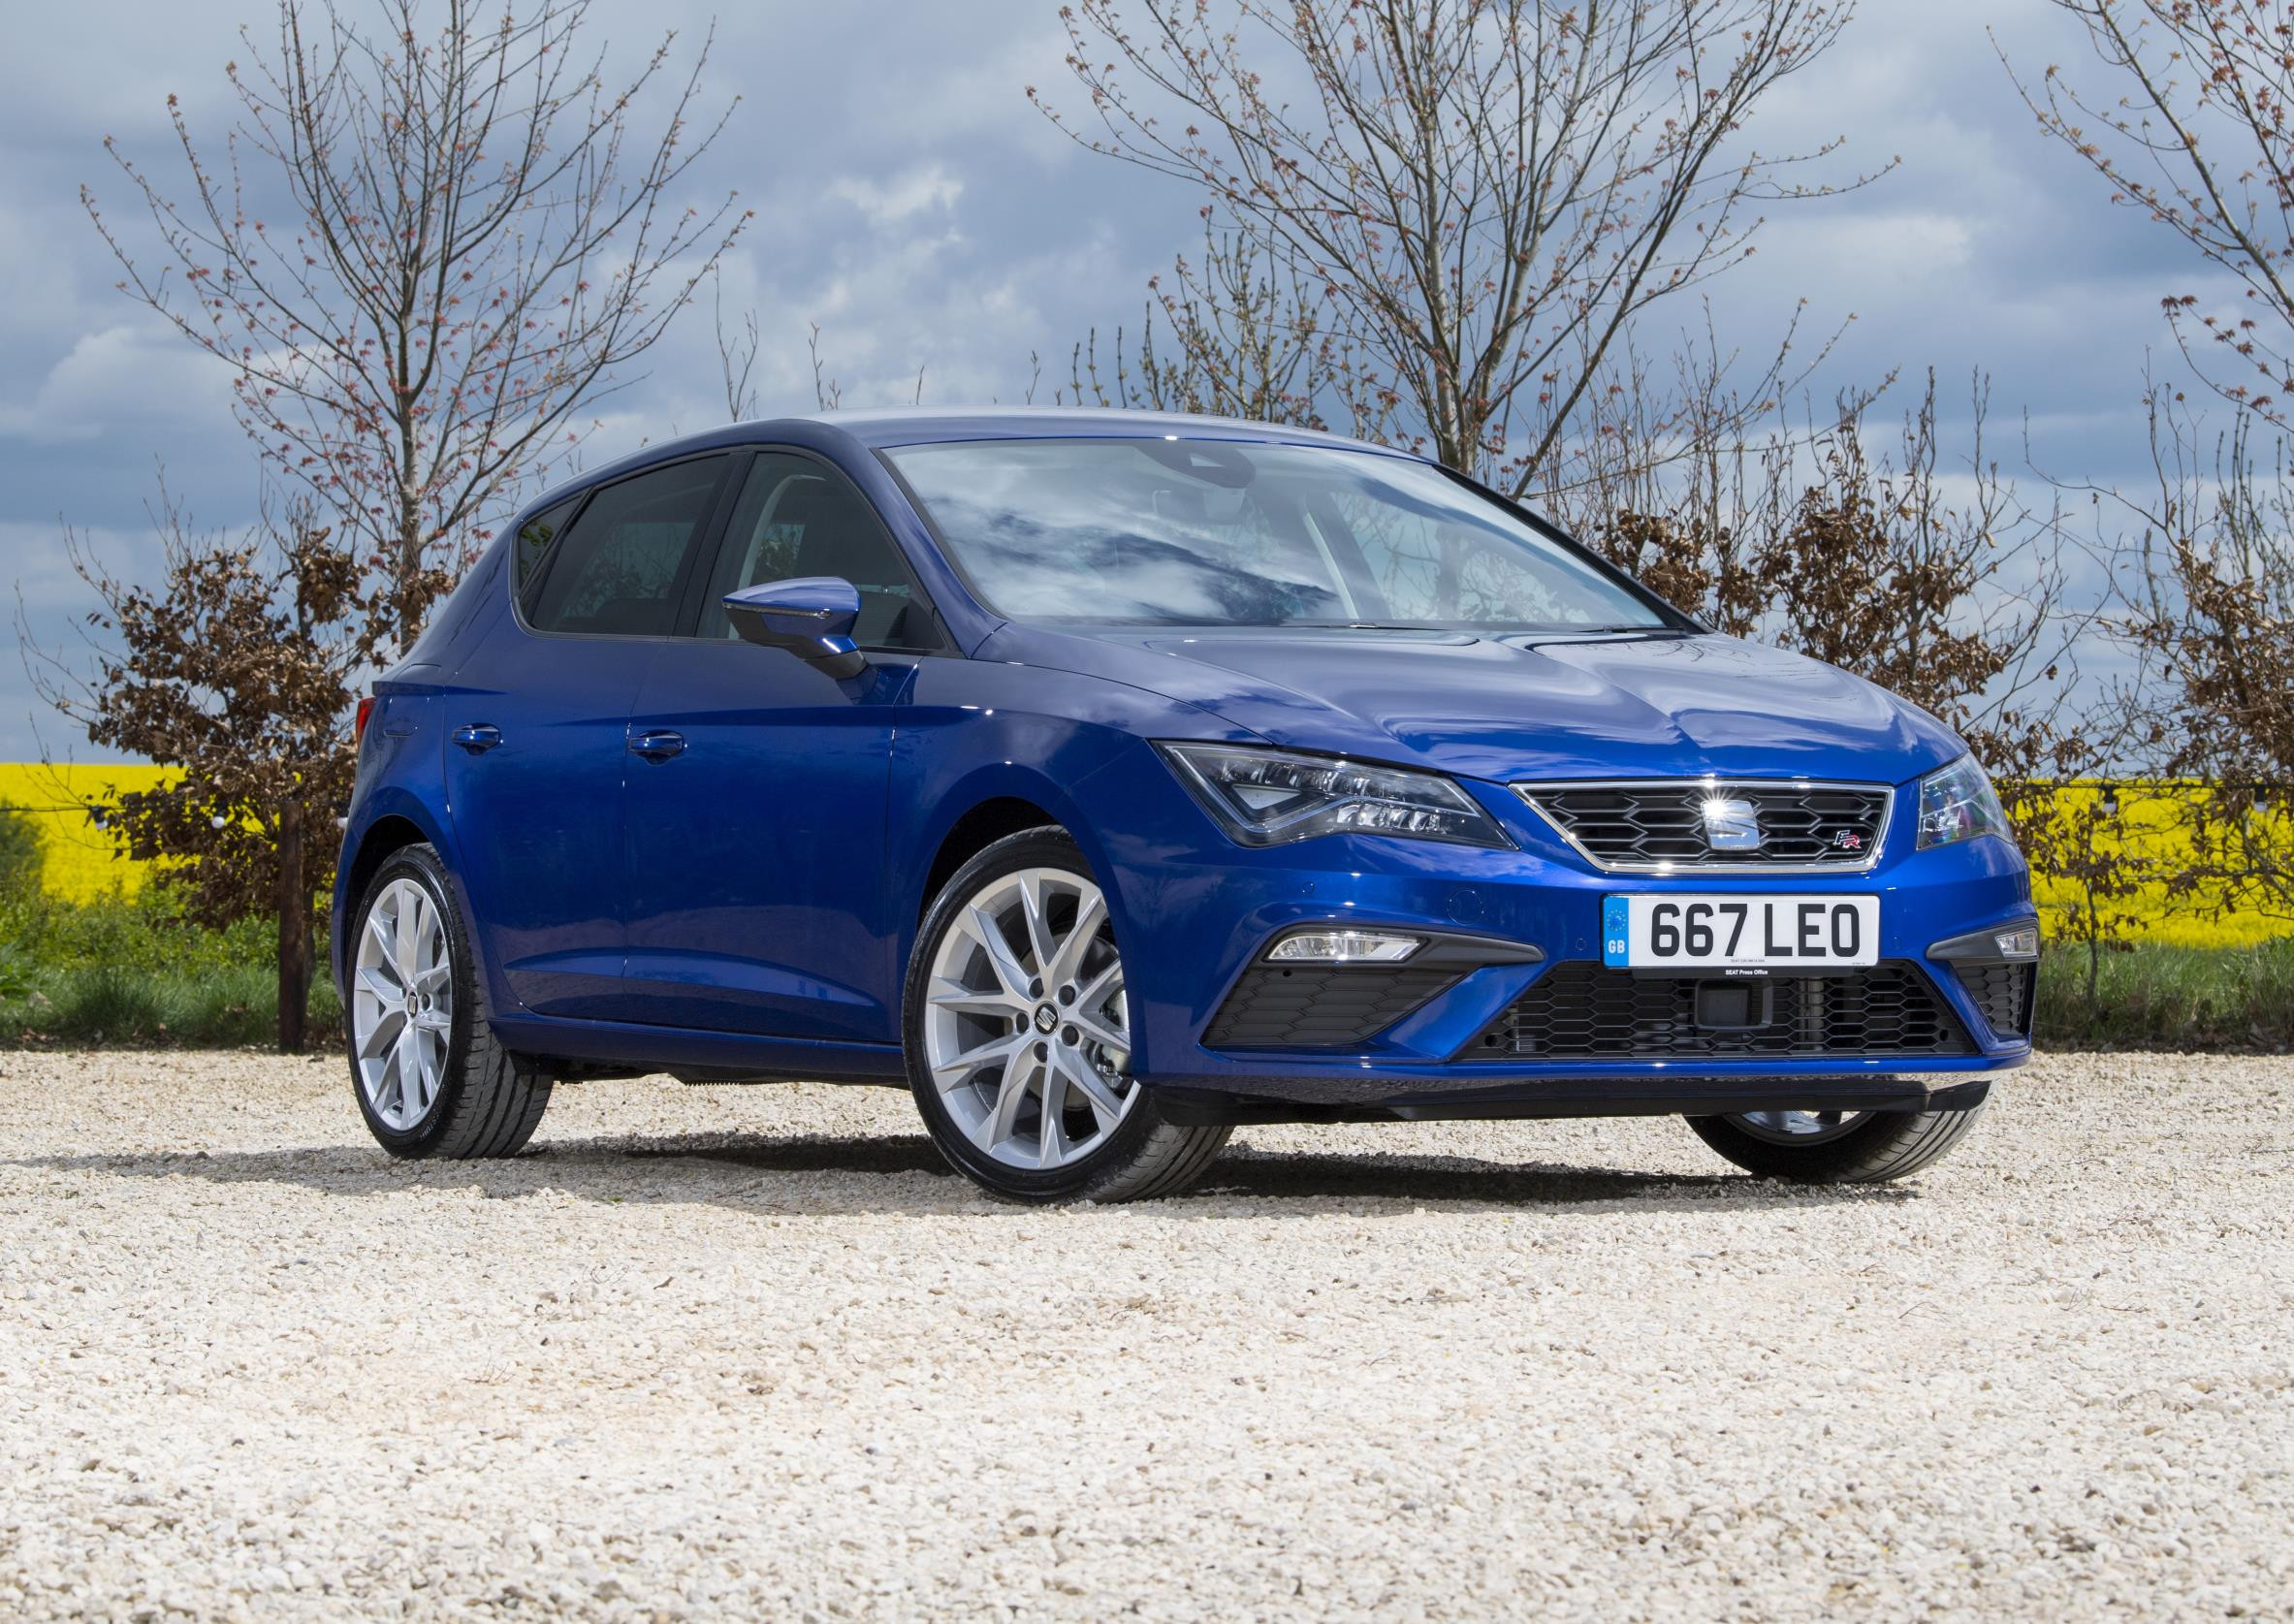 Blue SEAT Leon parked two thirds side on